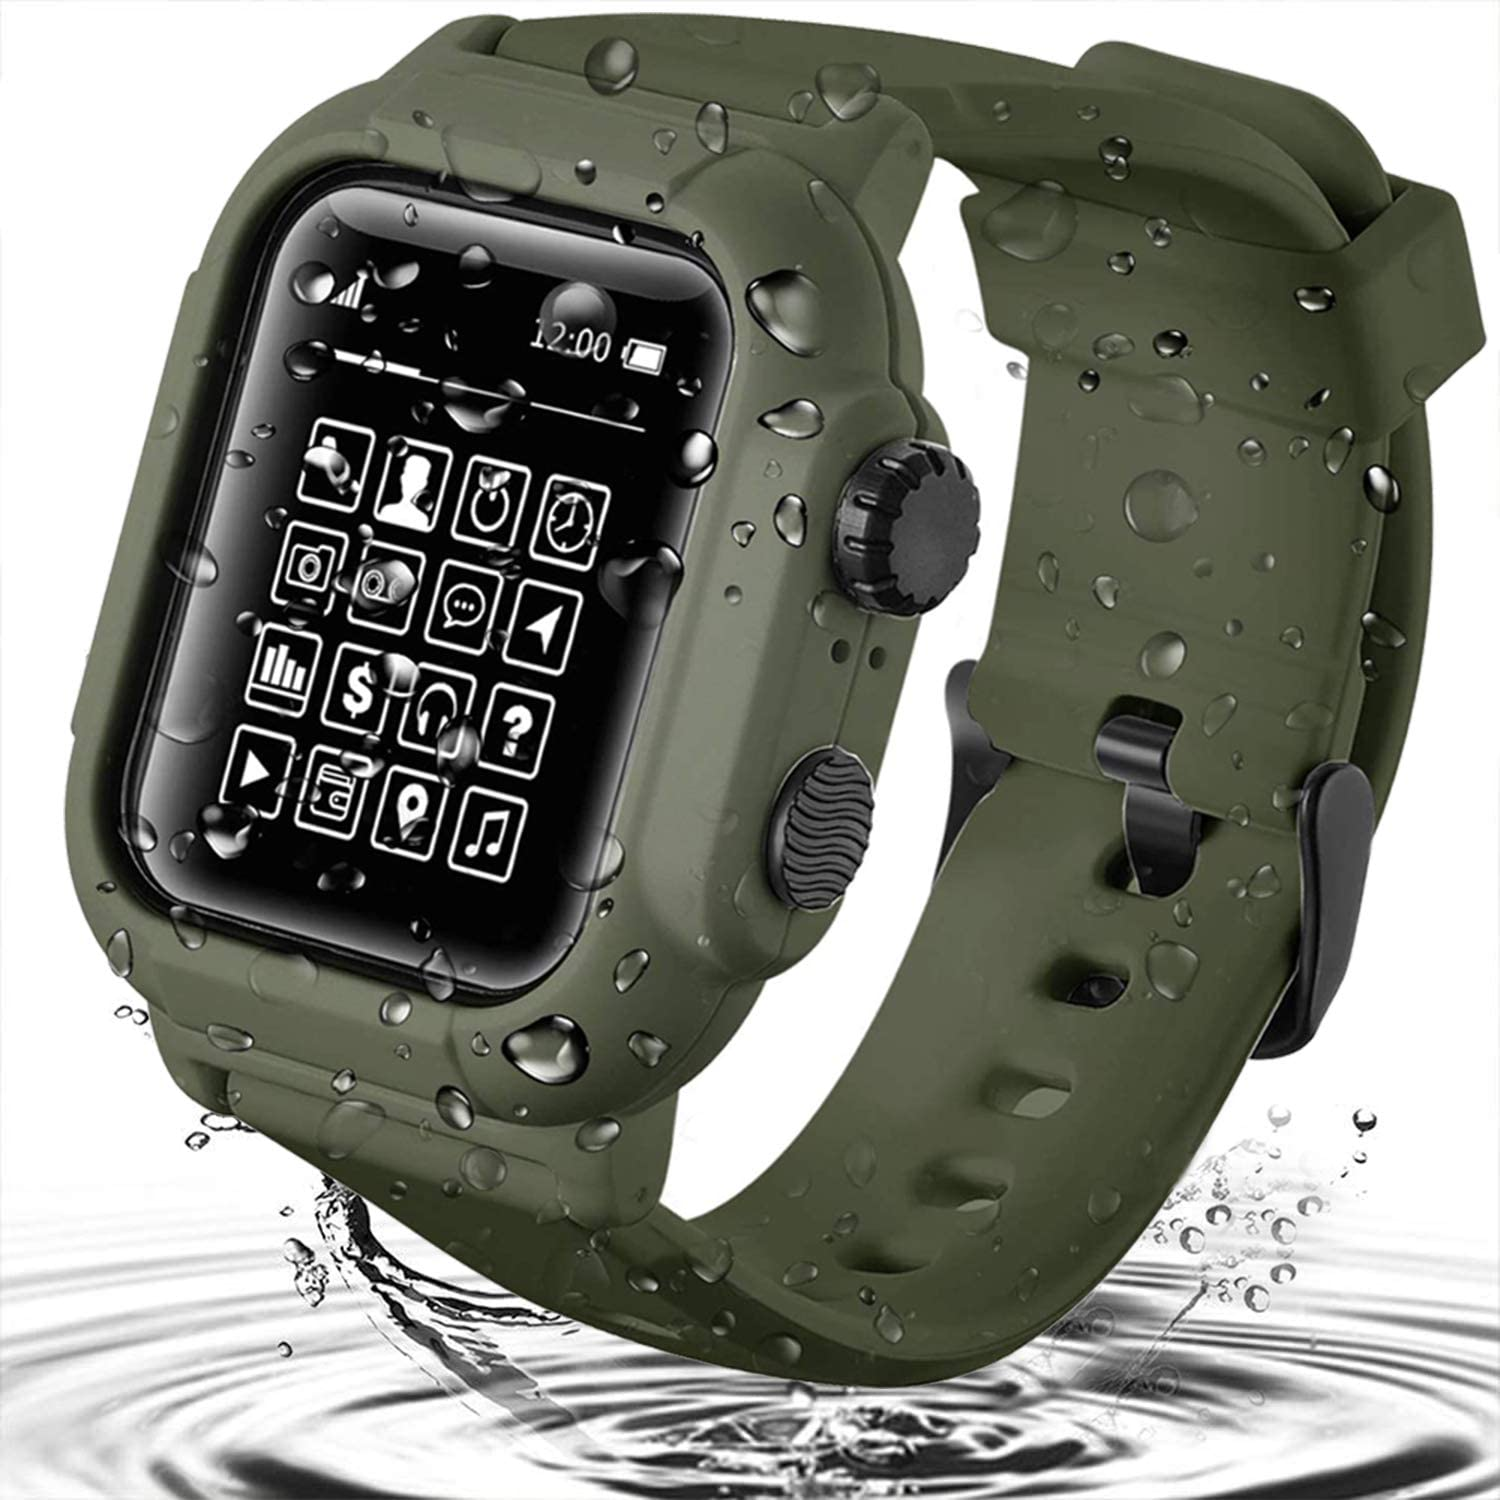 Waterproof Case for Apple Watch Series 6/5 / 4 / SE 44mm, Built-in Screen Protector Rugged Shockproof iWatch Protective Cover Case with Premium Soft Silicone Band (42mm, ArmyGreen)